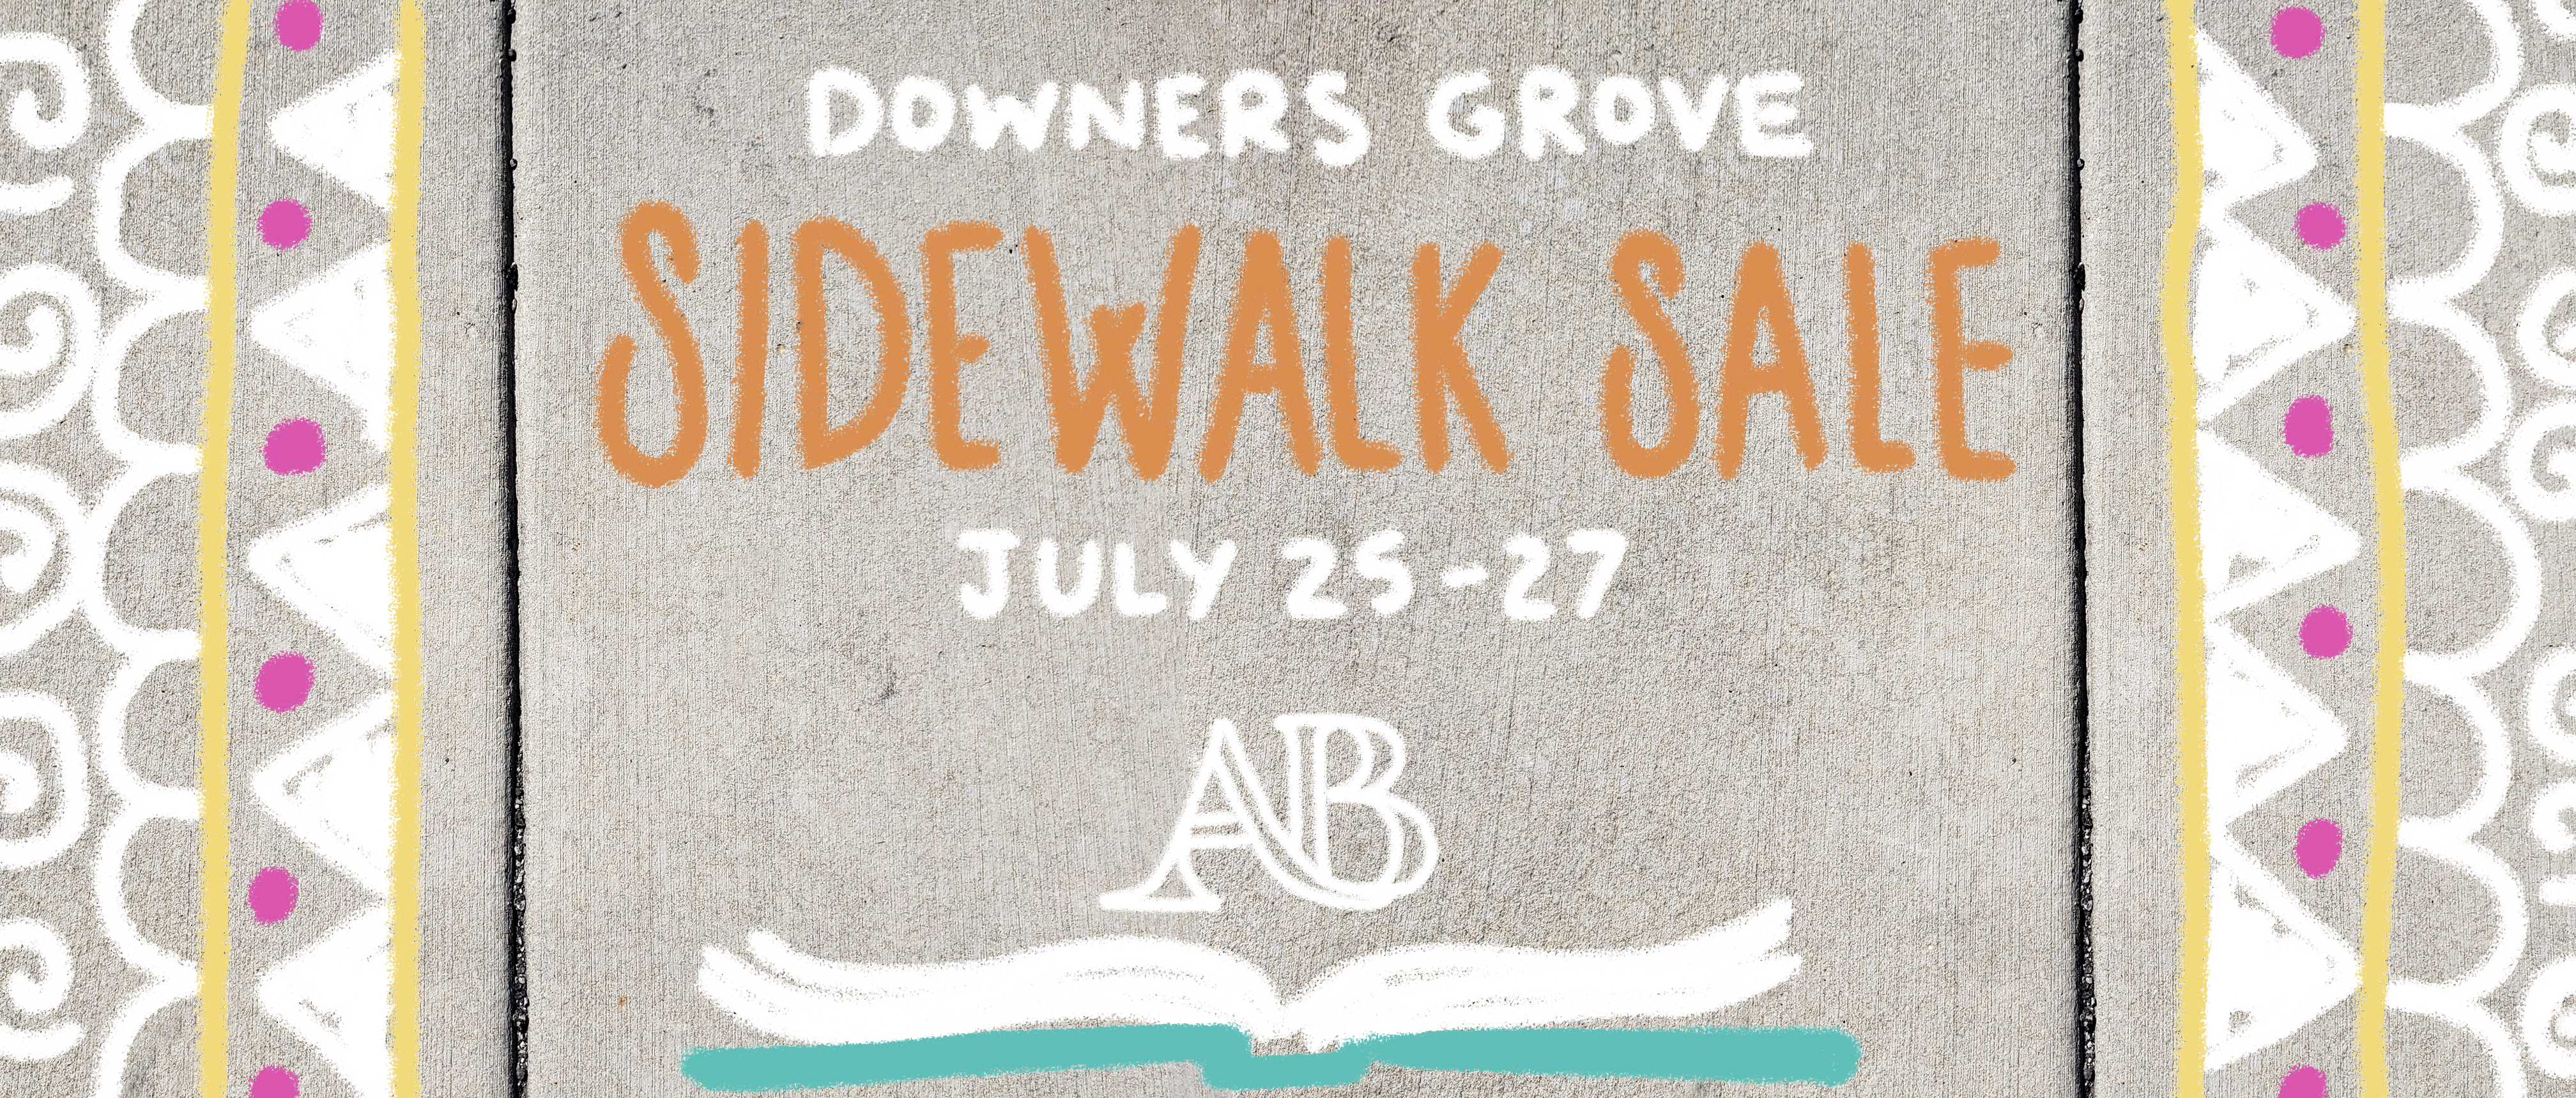 Sidewalk Sale in Downers Grove